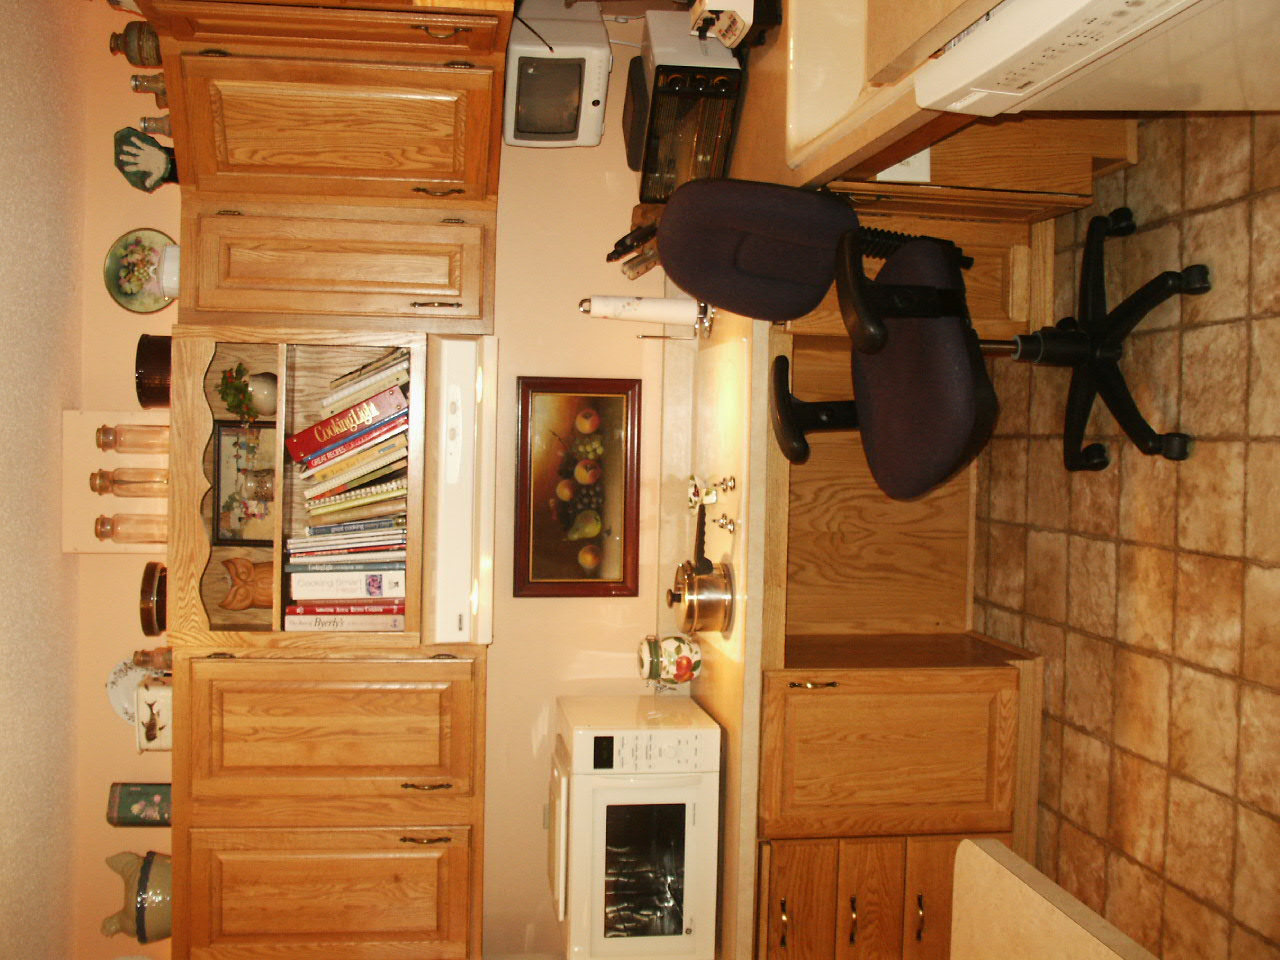 Jeanne's accessible kitchen that allows her to comfortably cook while in a seated position.